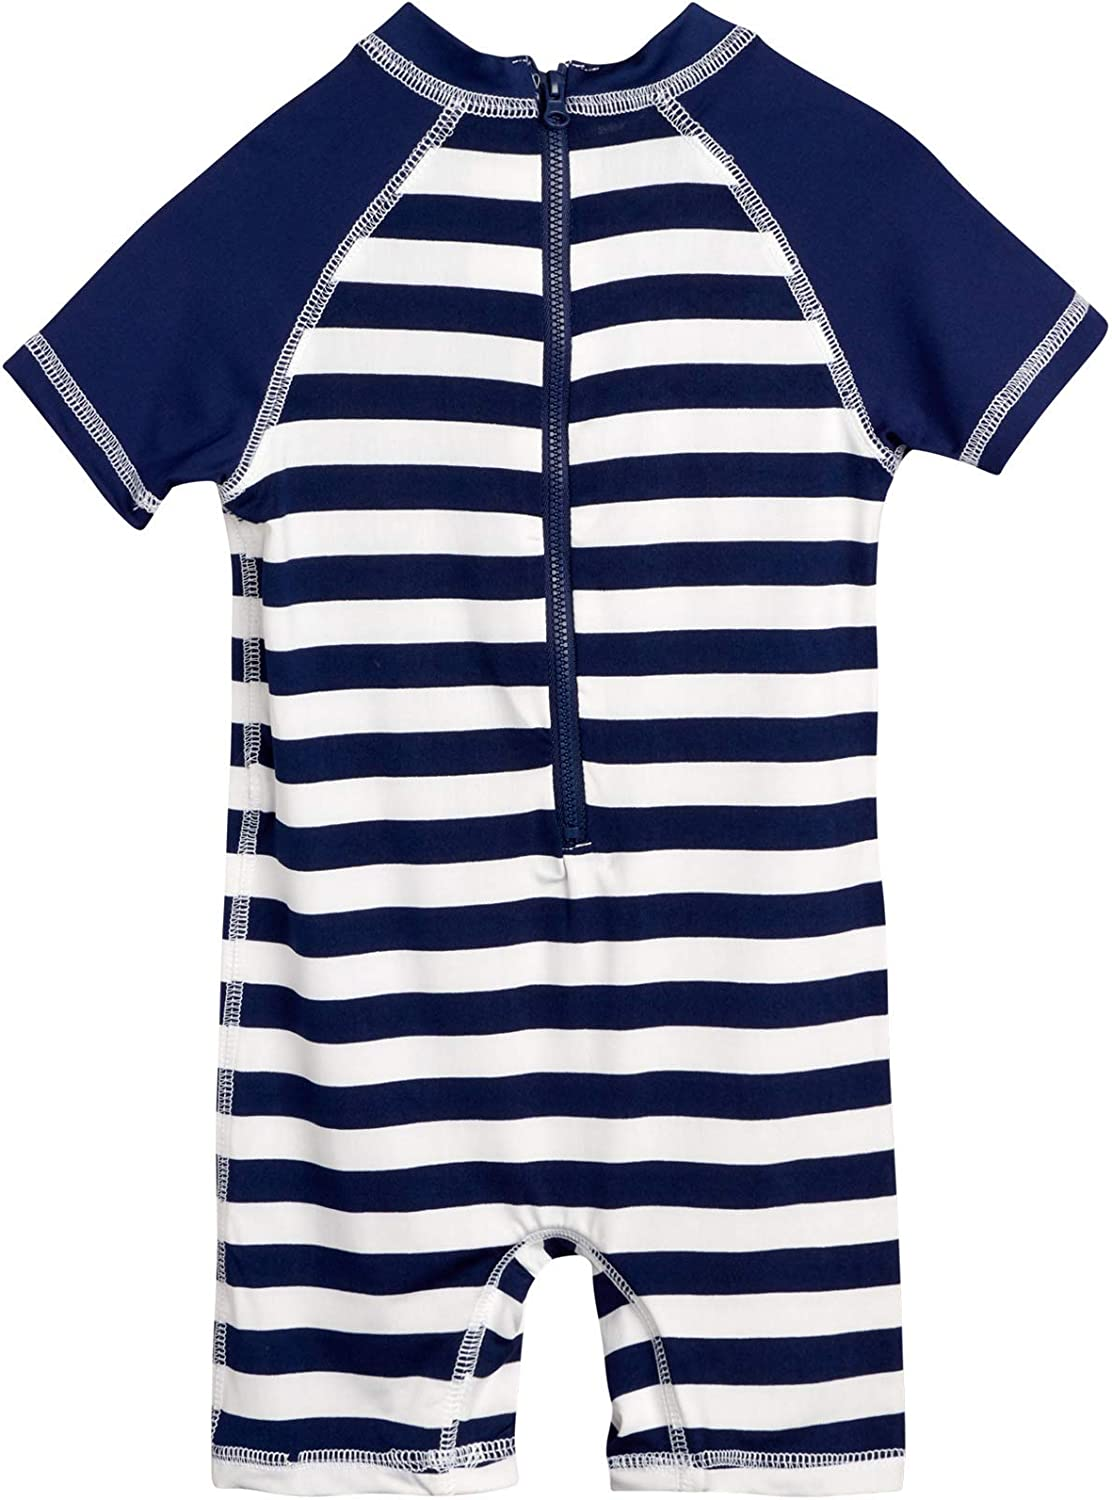 Newborn and Infant Sun Protection Swimsuit Wippette Baby Boys One-Piece UPF 50+ Rash Guard Sunsuits Navy//Stripe Crab Size 9 Months